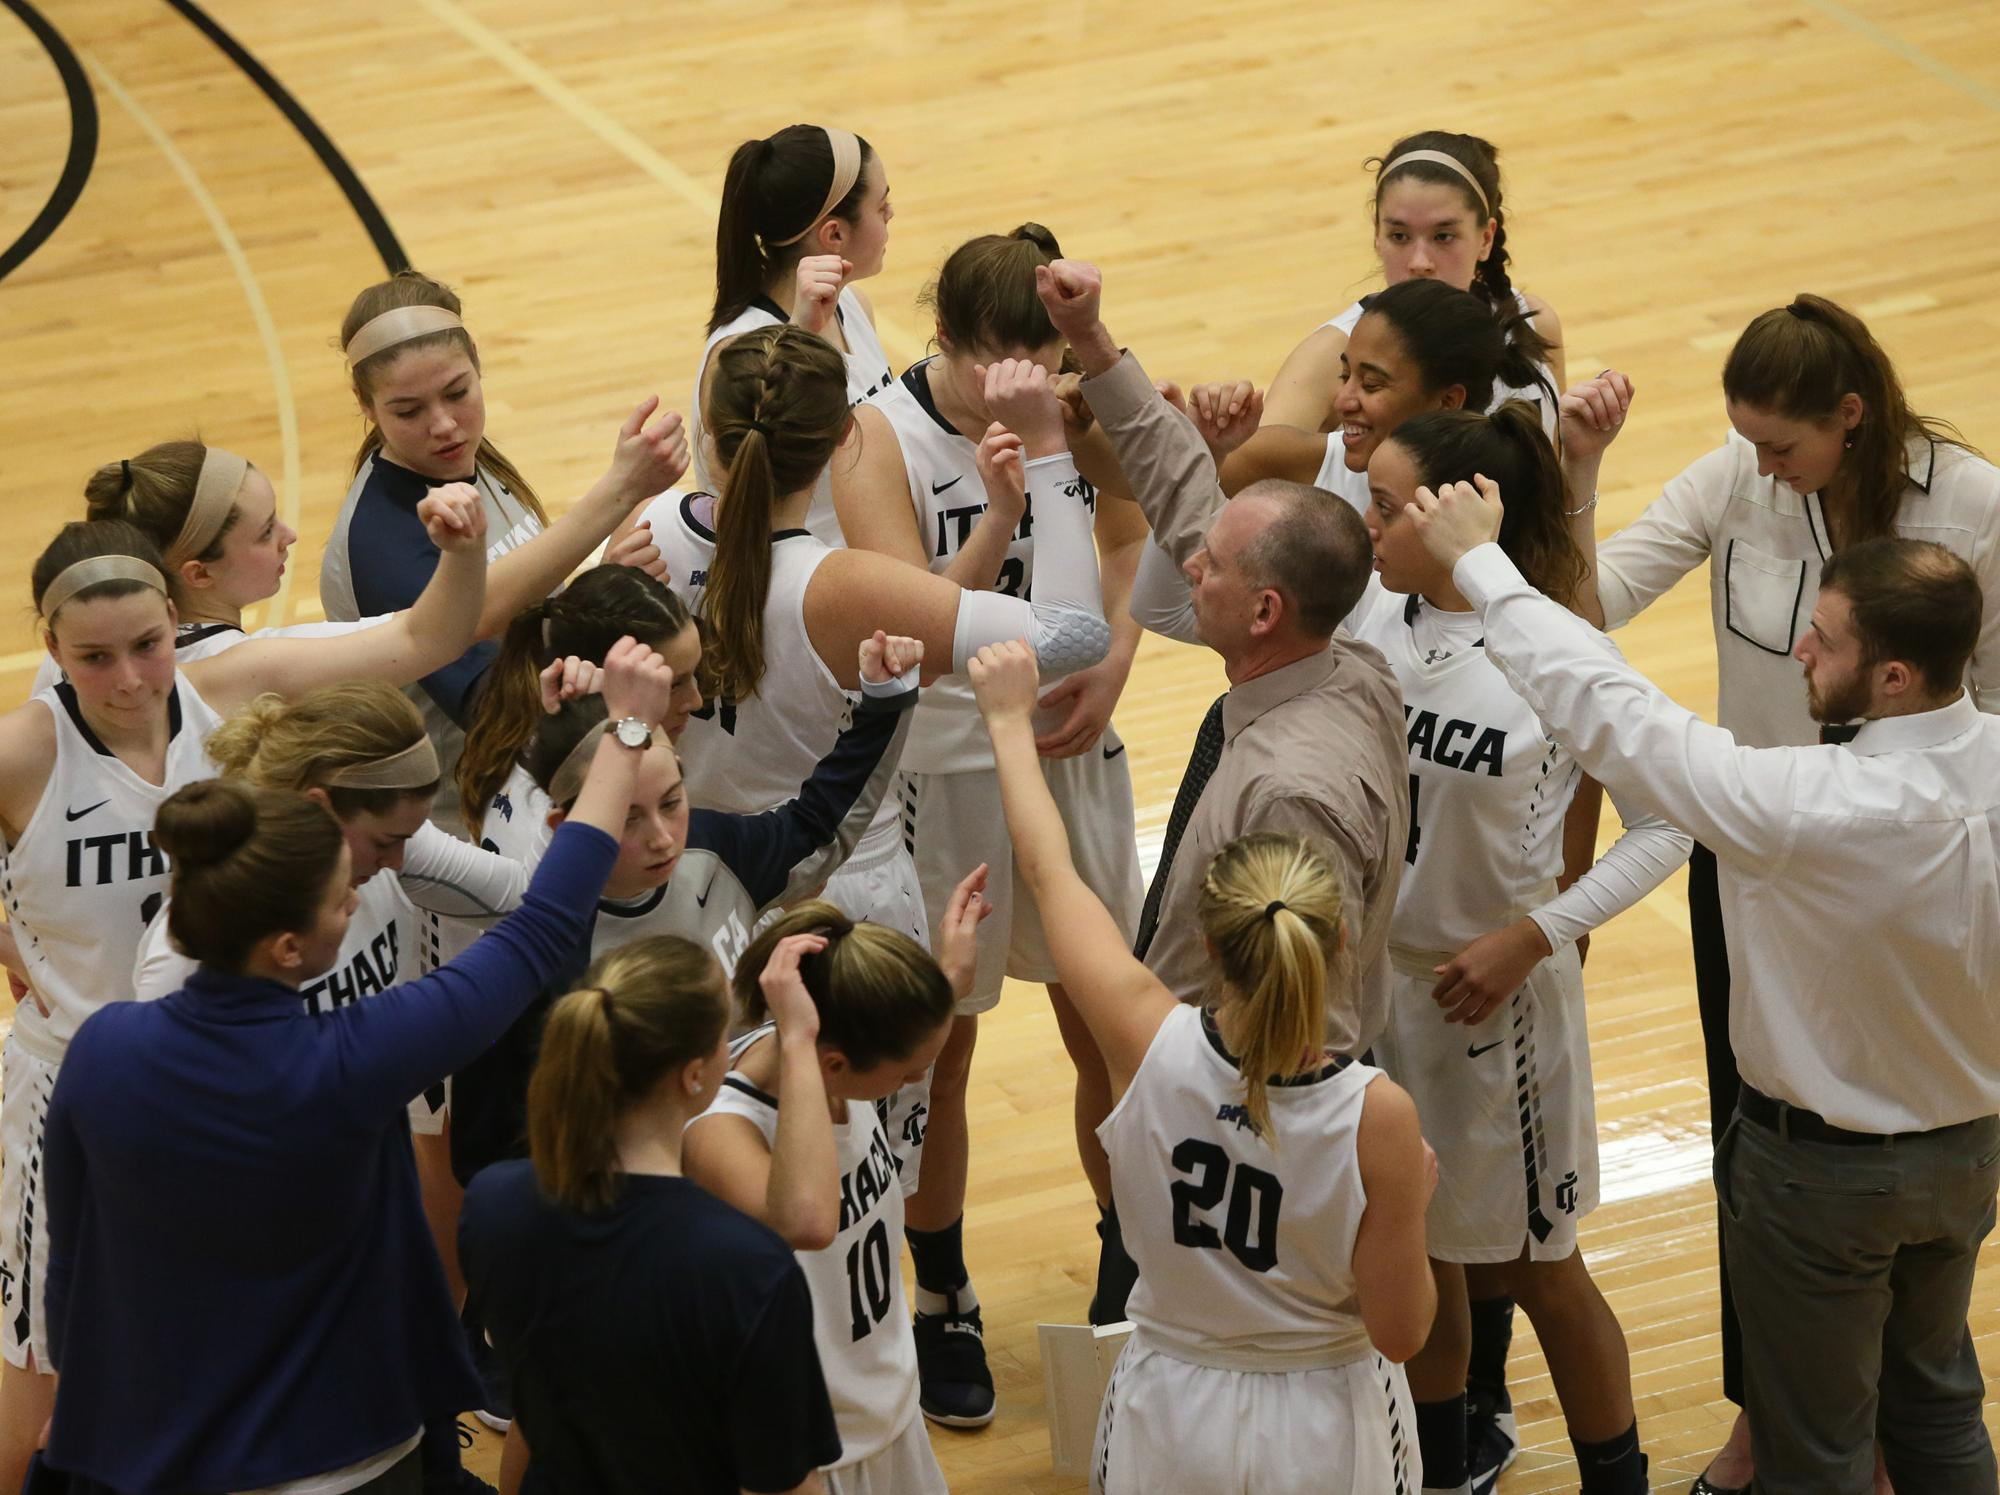 Ithaca college athletics wbb team 2 14 17 publicscrutiny Choice Image